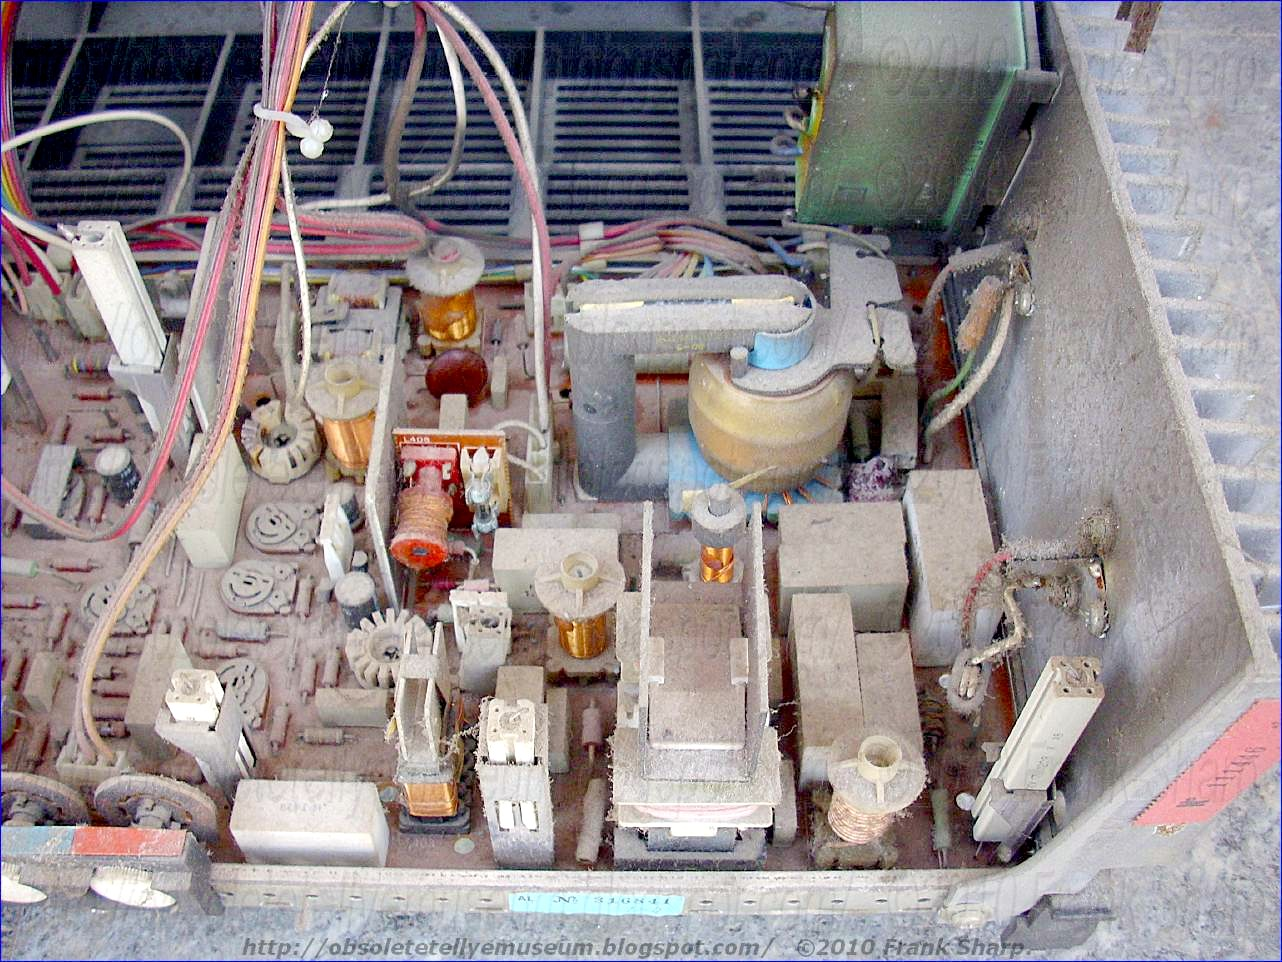 Obsolete Technology Tellye Indesit Type Tc26si Chassis B Vv708 Parallel Lc Circuit Http Electronicsclubforengineersblogspotcom An Electron Beam Deflection For A Cathode Ray Tube With Electromagnetic By Means Of Sawtooth Current Waveform Having Trace Portion